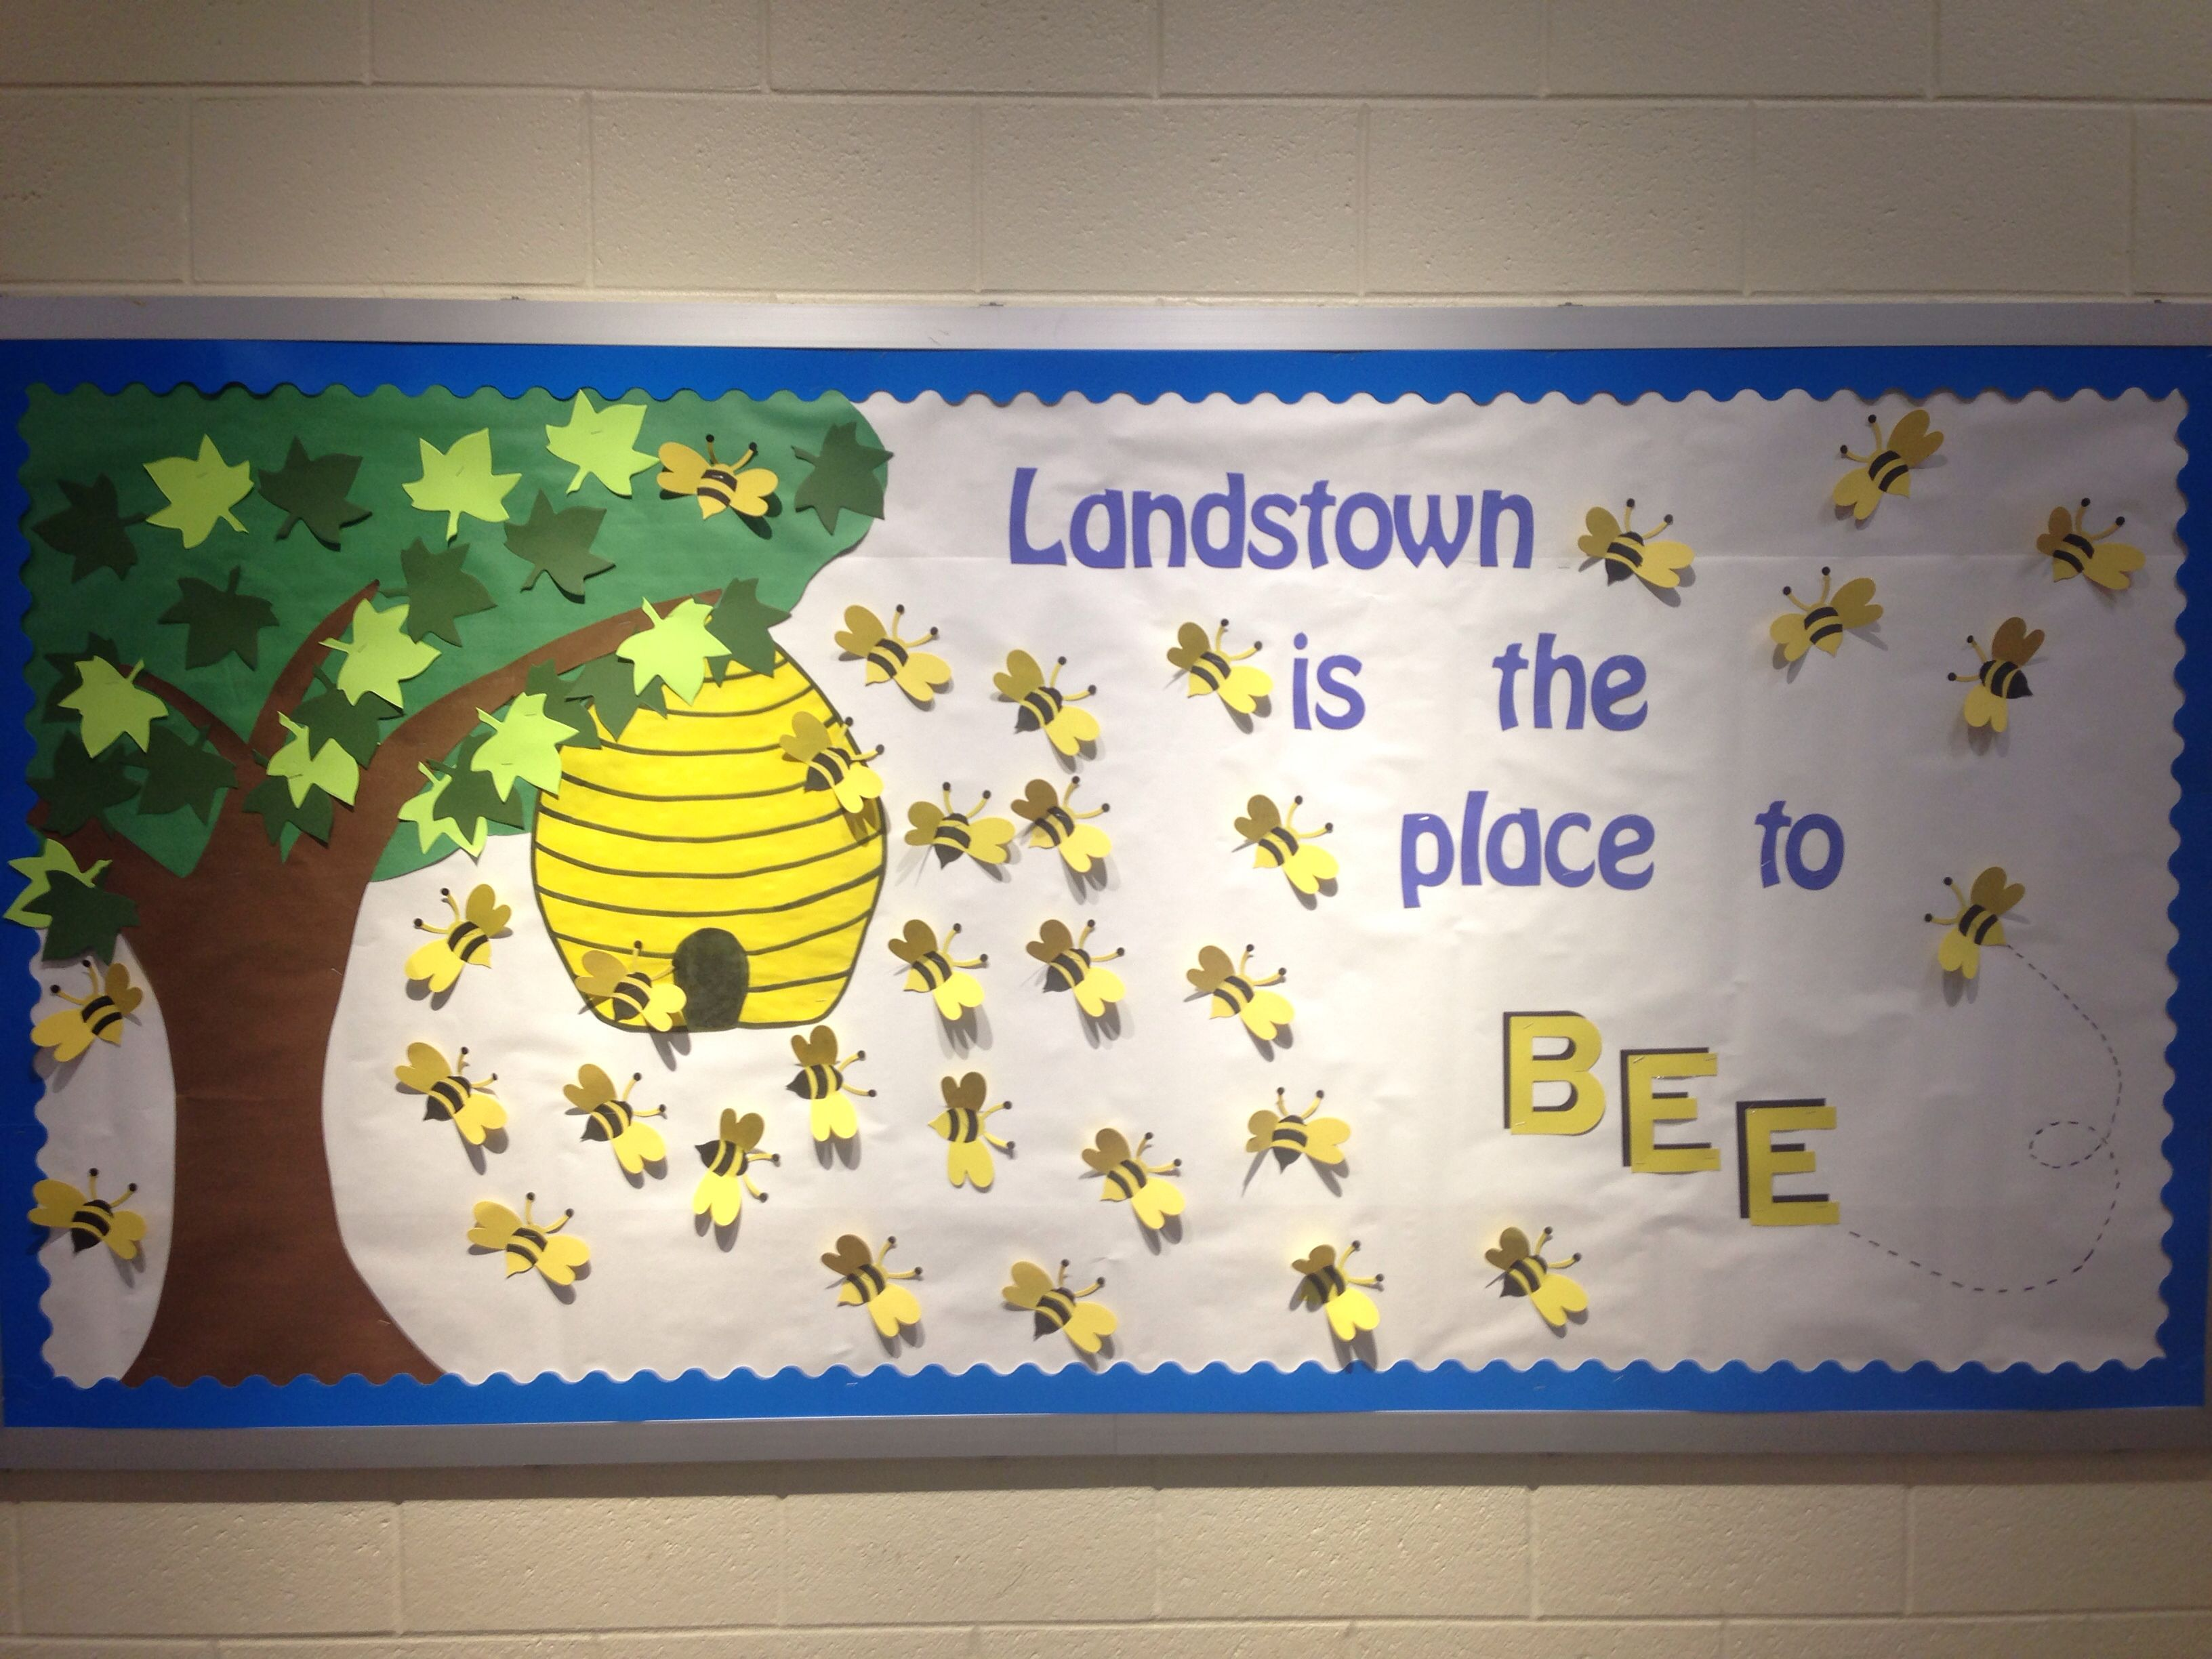 Our School Is The Place To Bee Honey Bee Hive Bumble